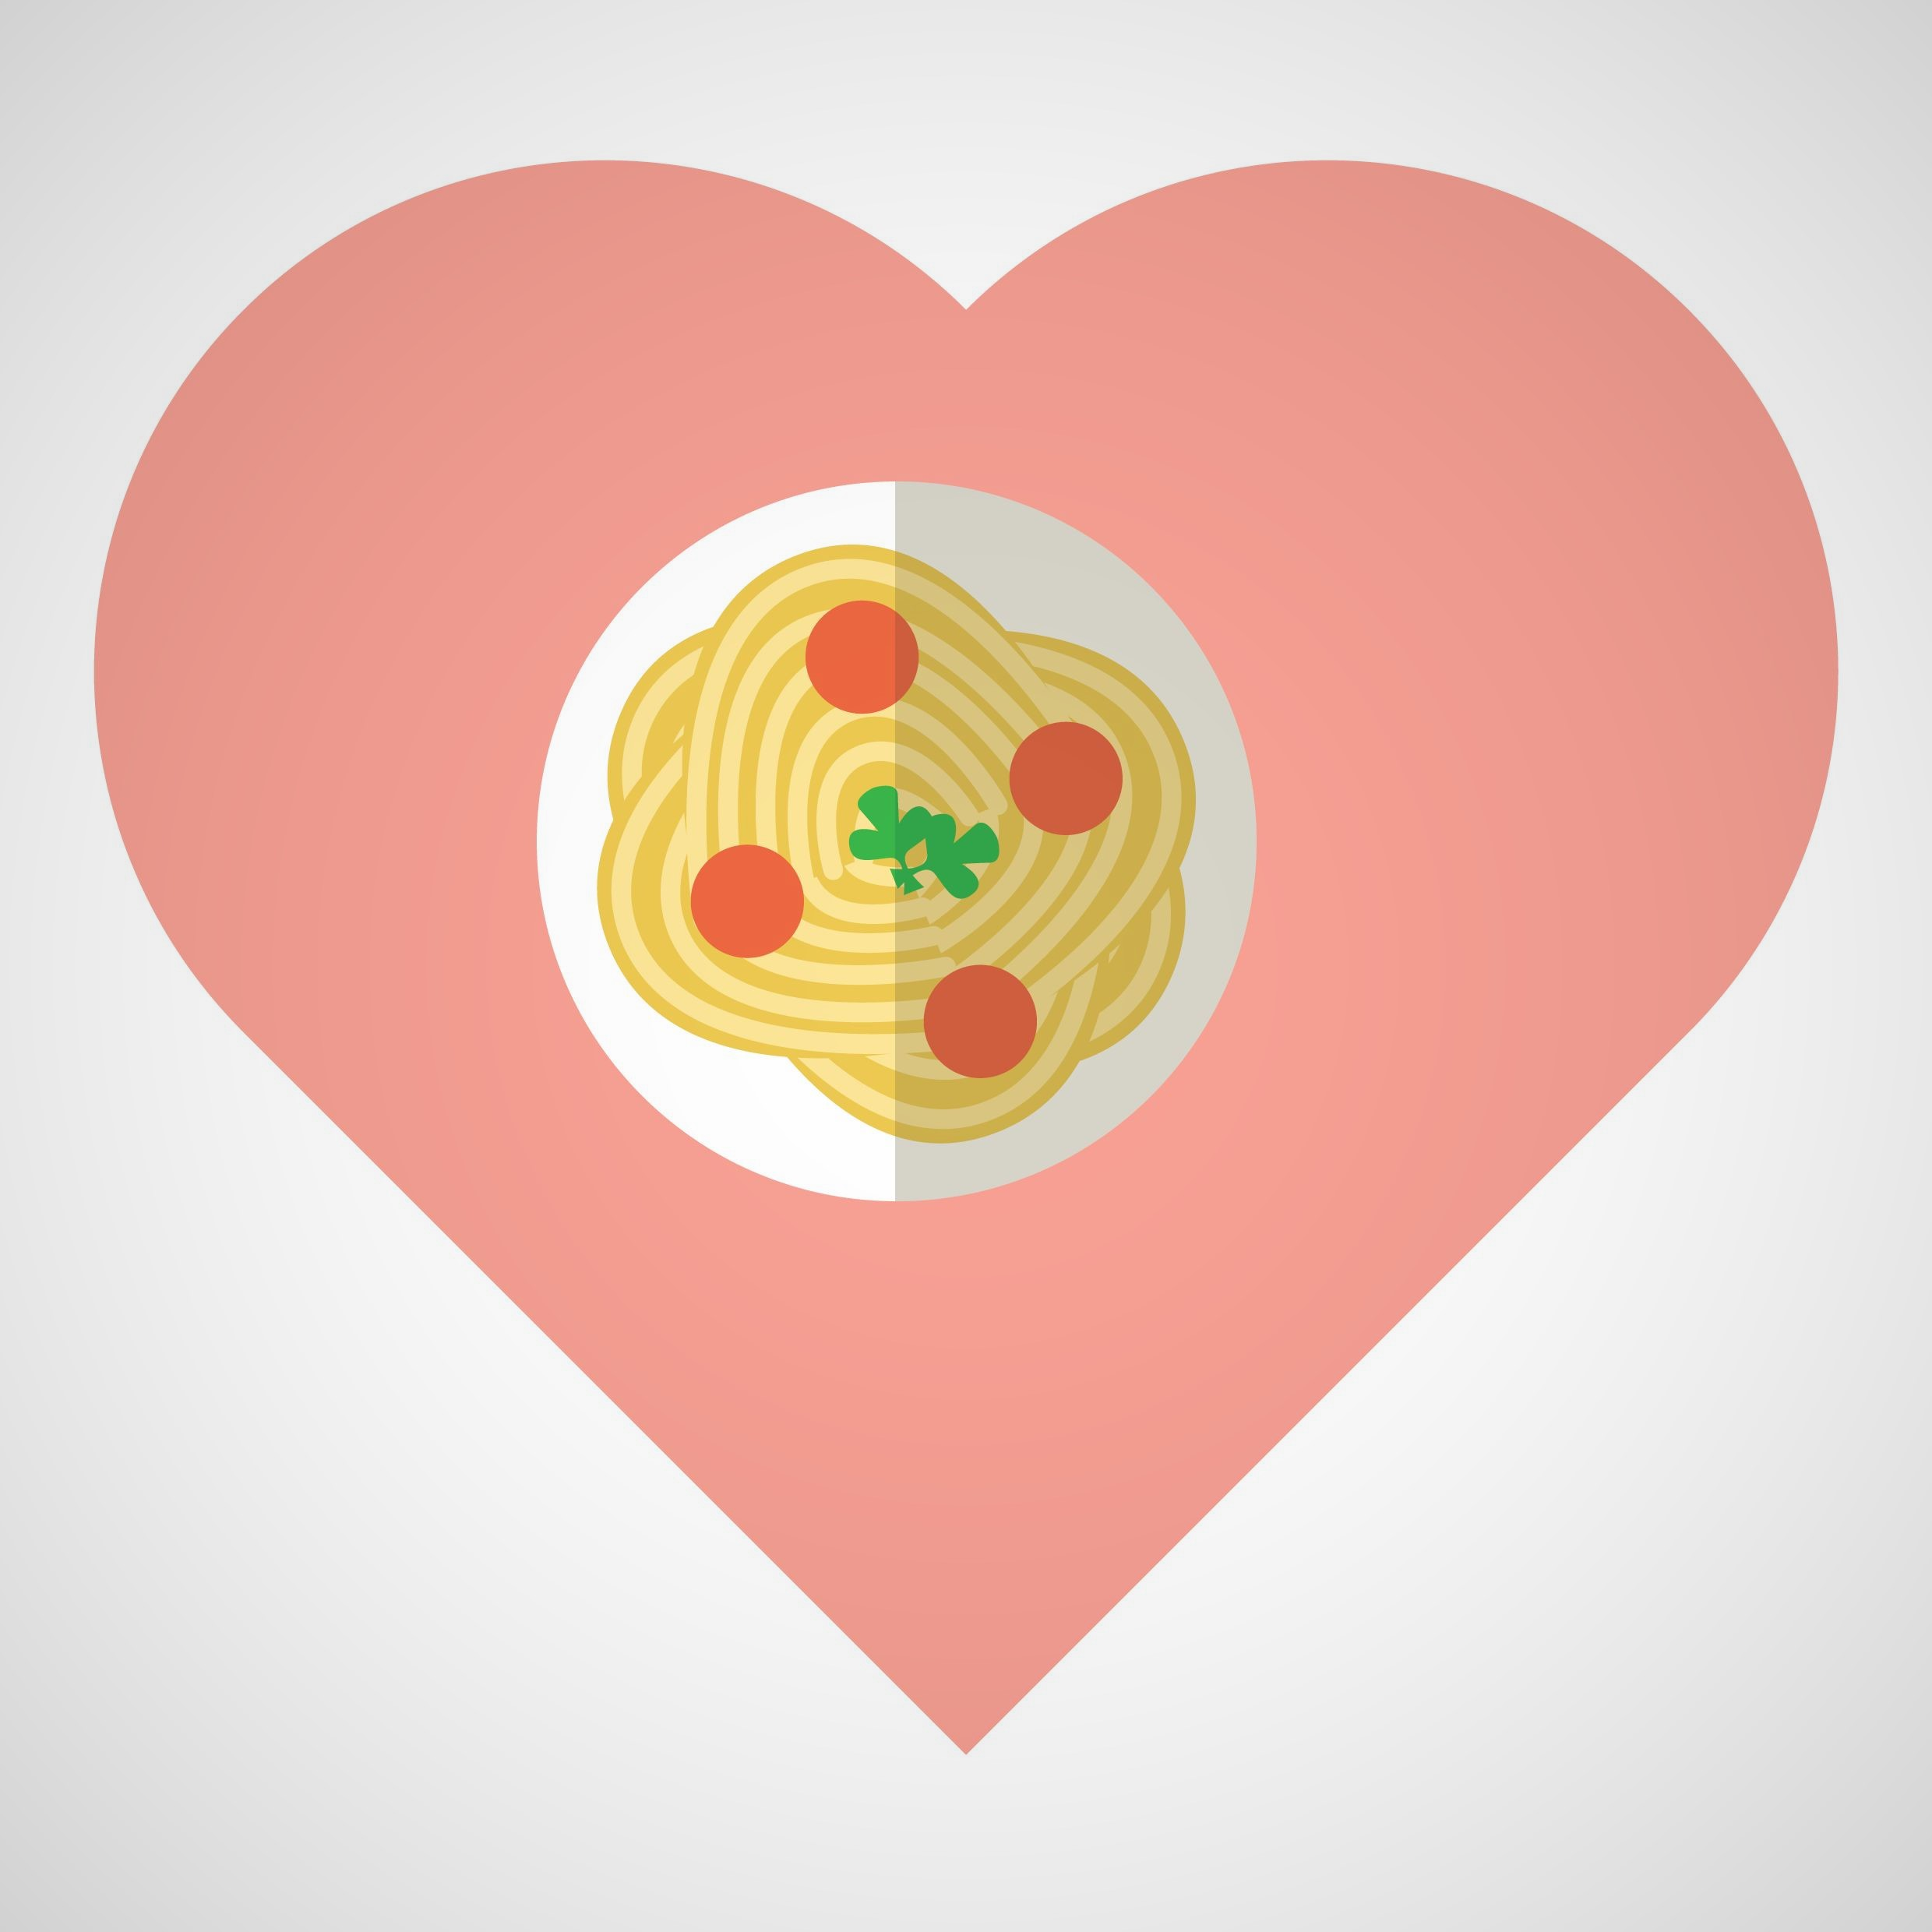 Spaghetti and meatballs in a heart shape to represent romance novel tropes